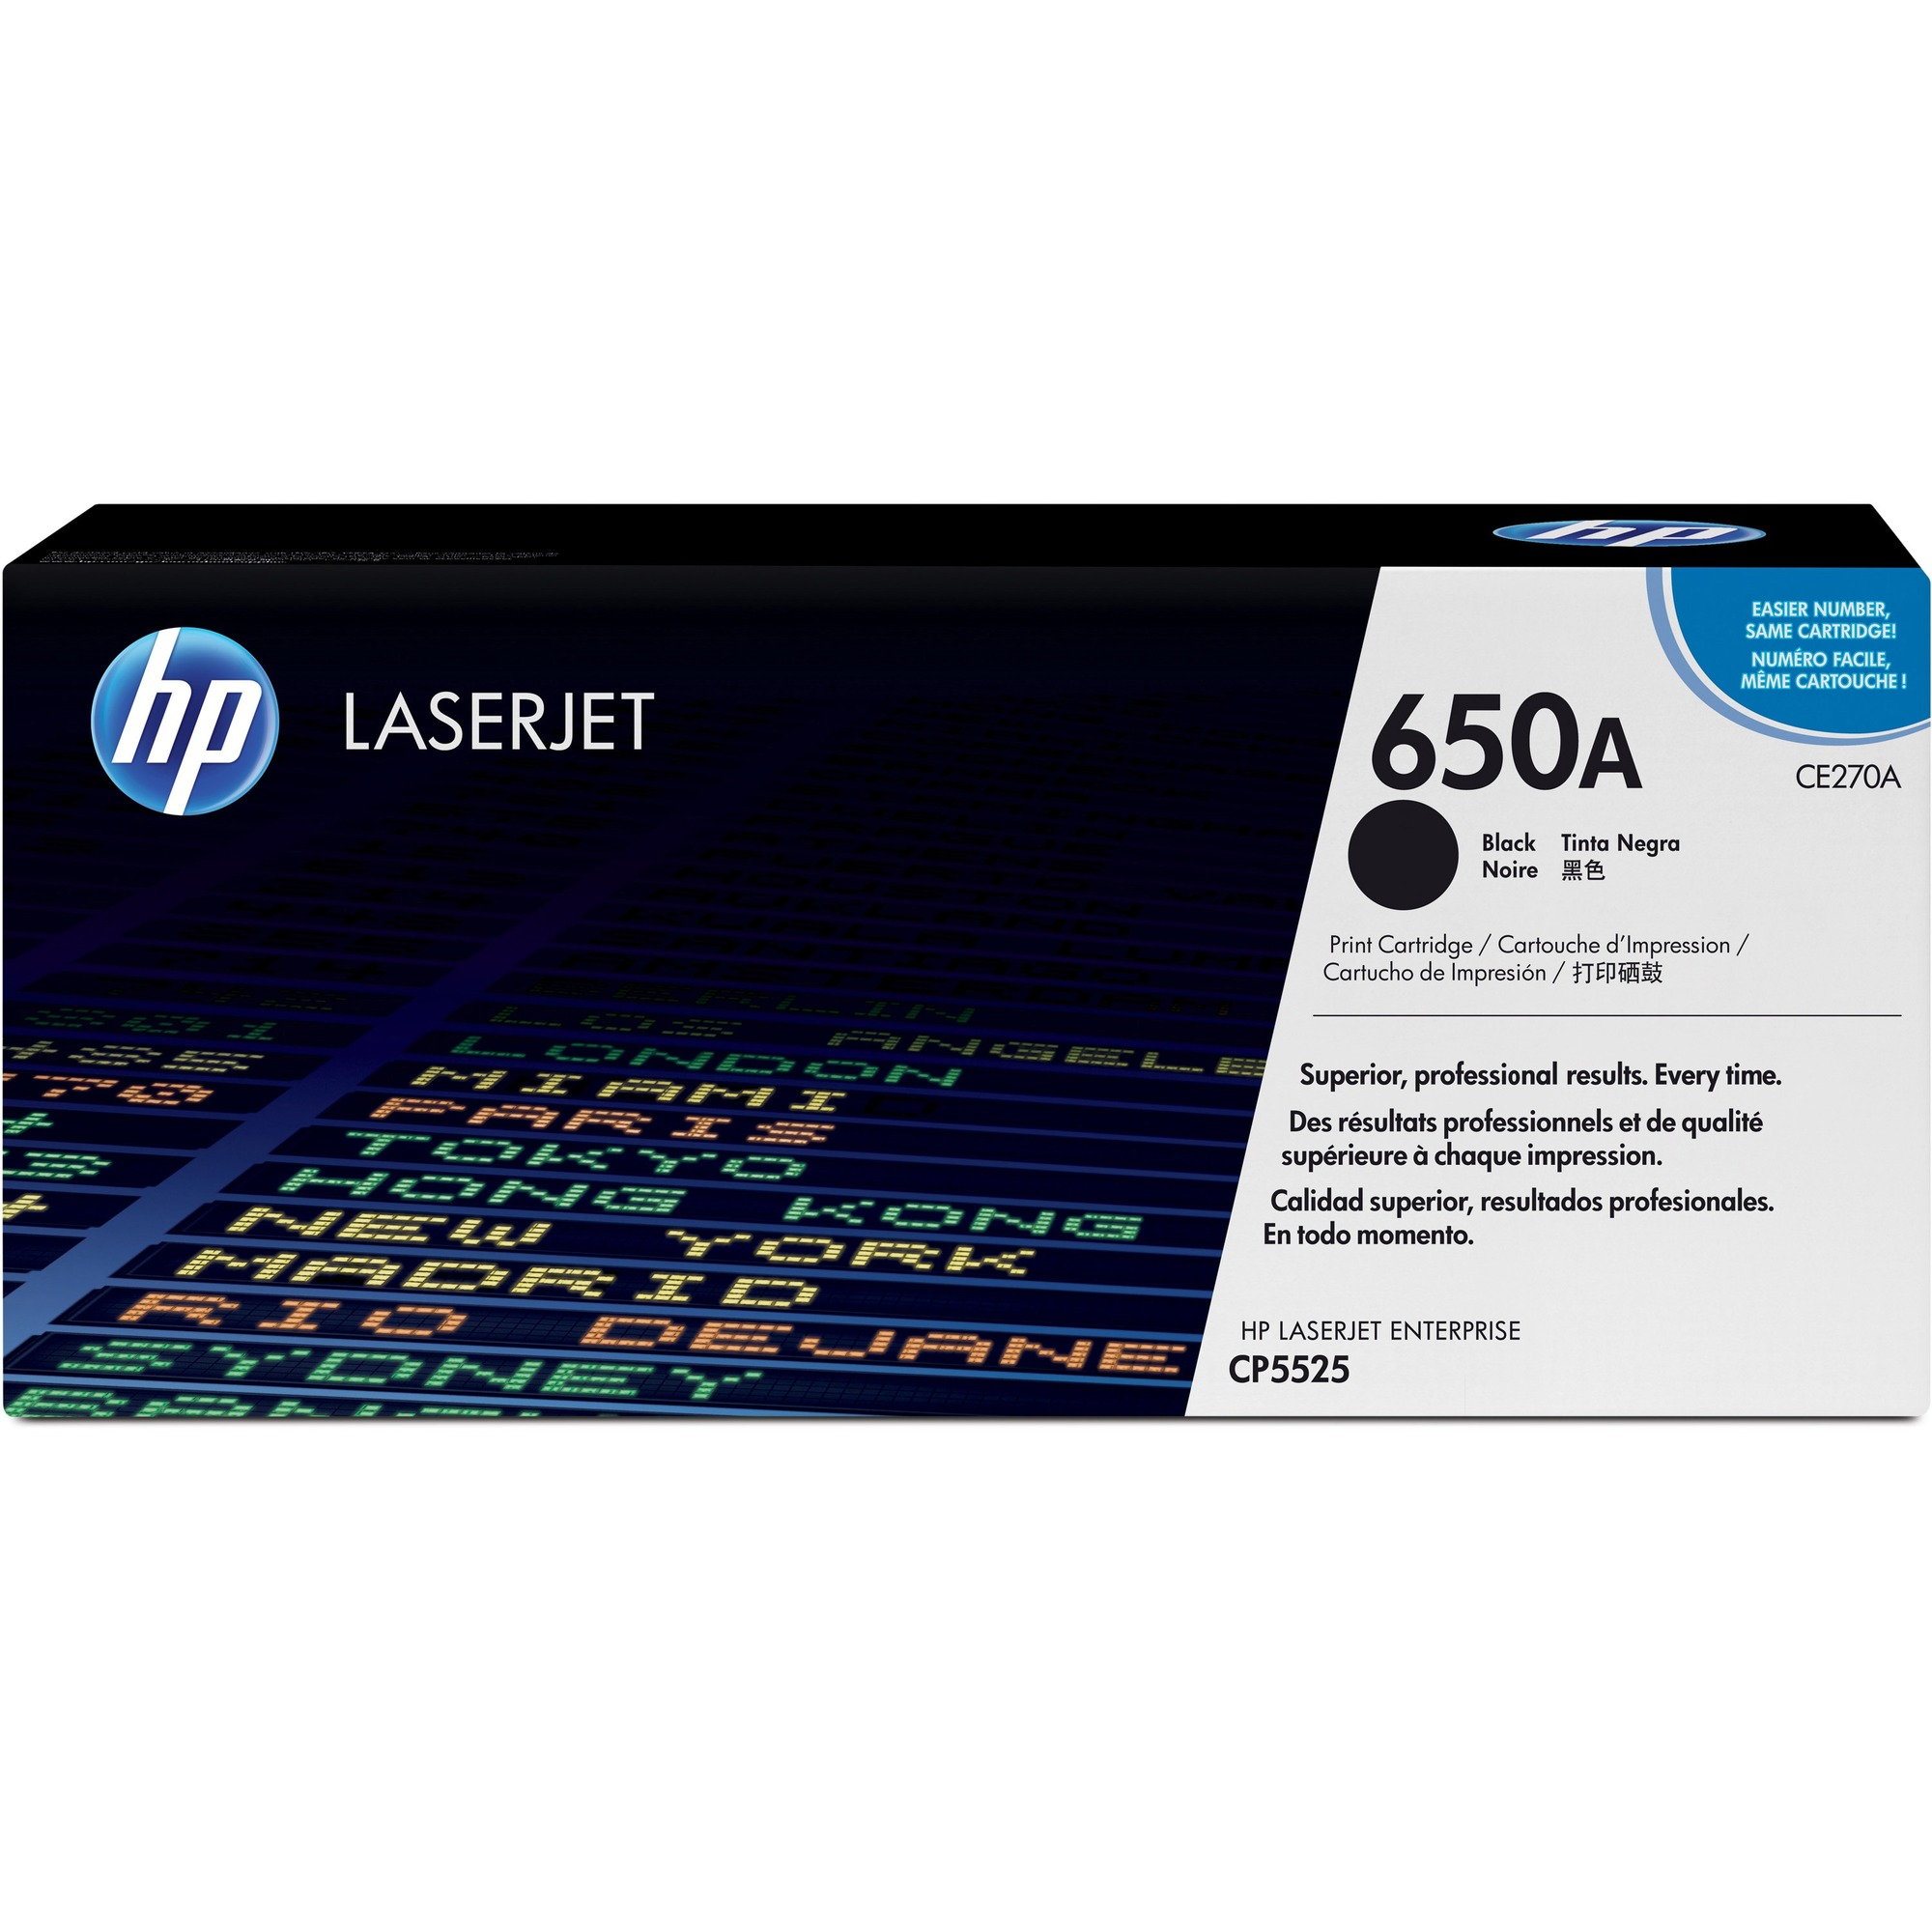 HP 650A Toner Cartridge - Black